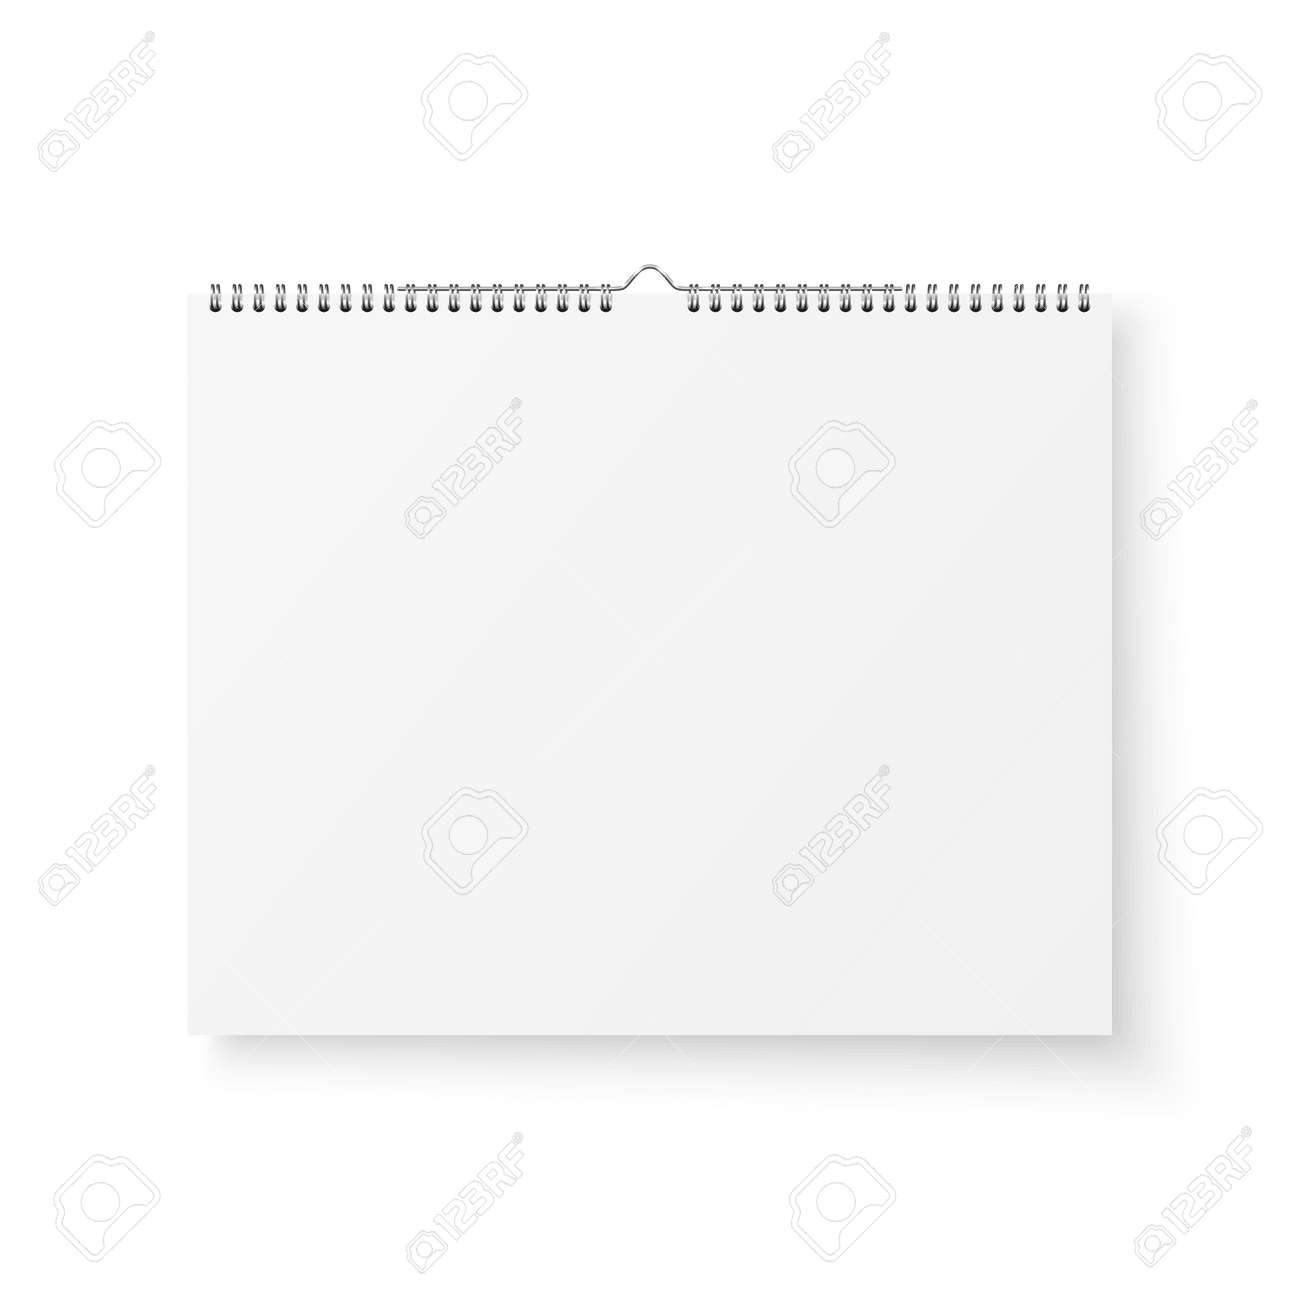 Vector 3d Realistic Paper White Blank Wall Calendar with Spring Icon Closeup Isolated on White Background. Copy Space. Design Template, Mockup, Top View - 155161538